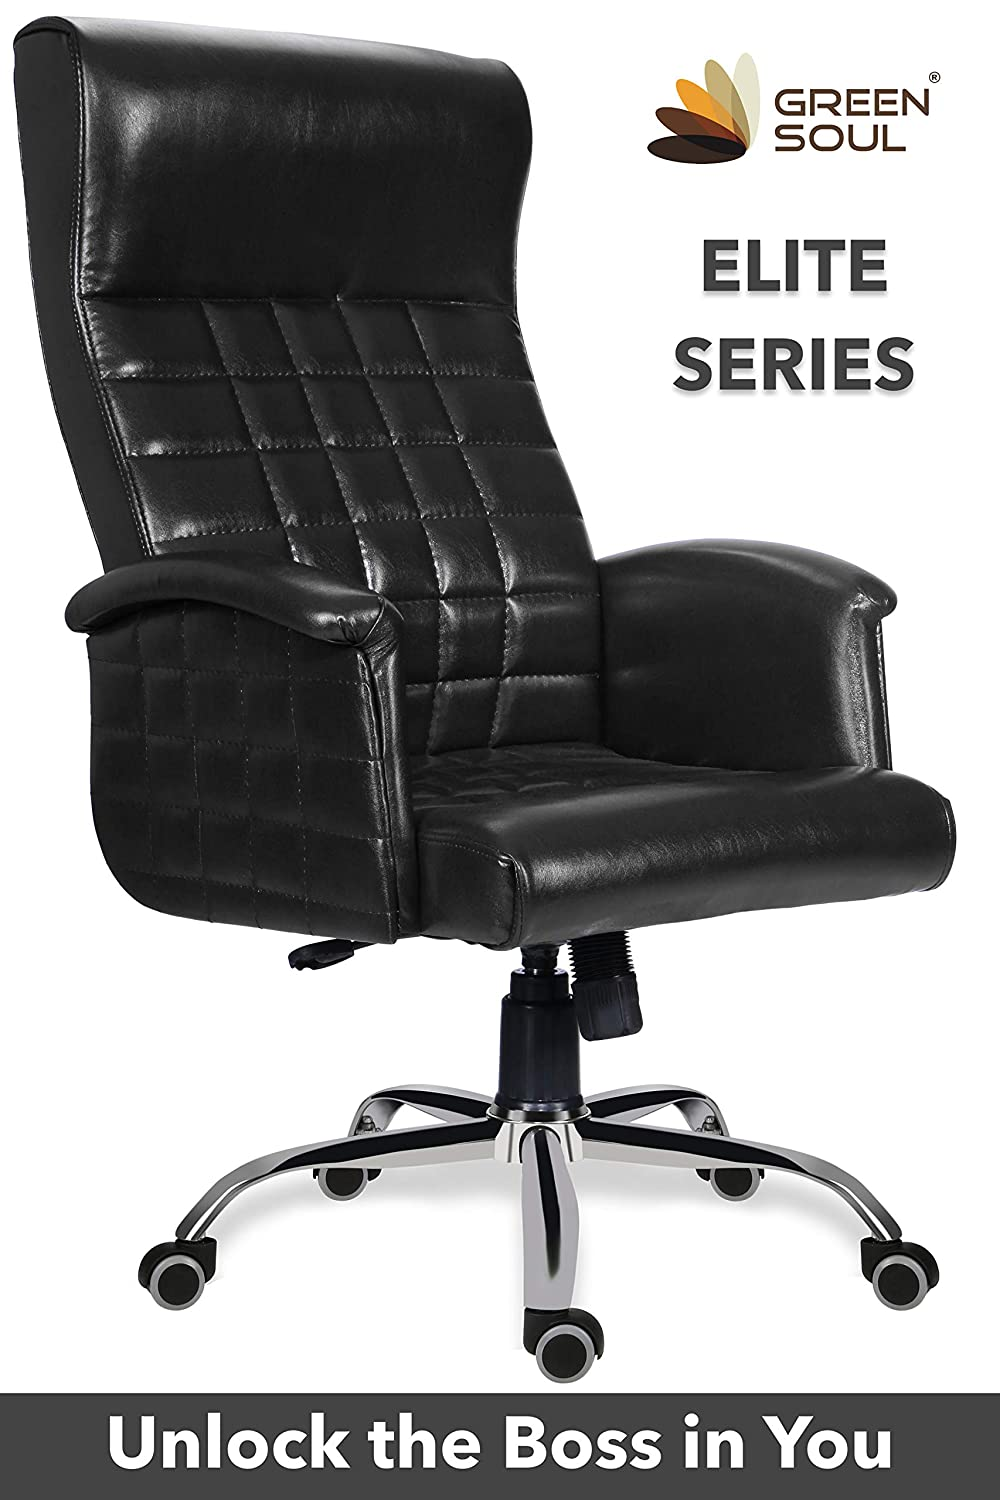 Green Soul Elite Boss/CEO/Director/Maharaja Chair (Black)